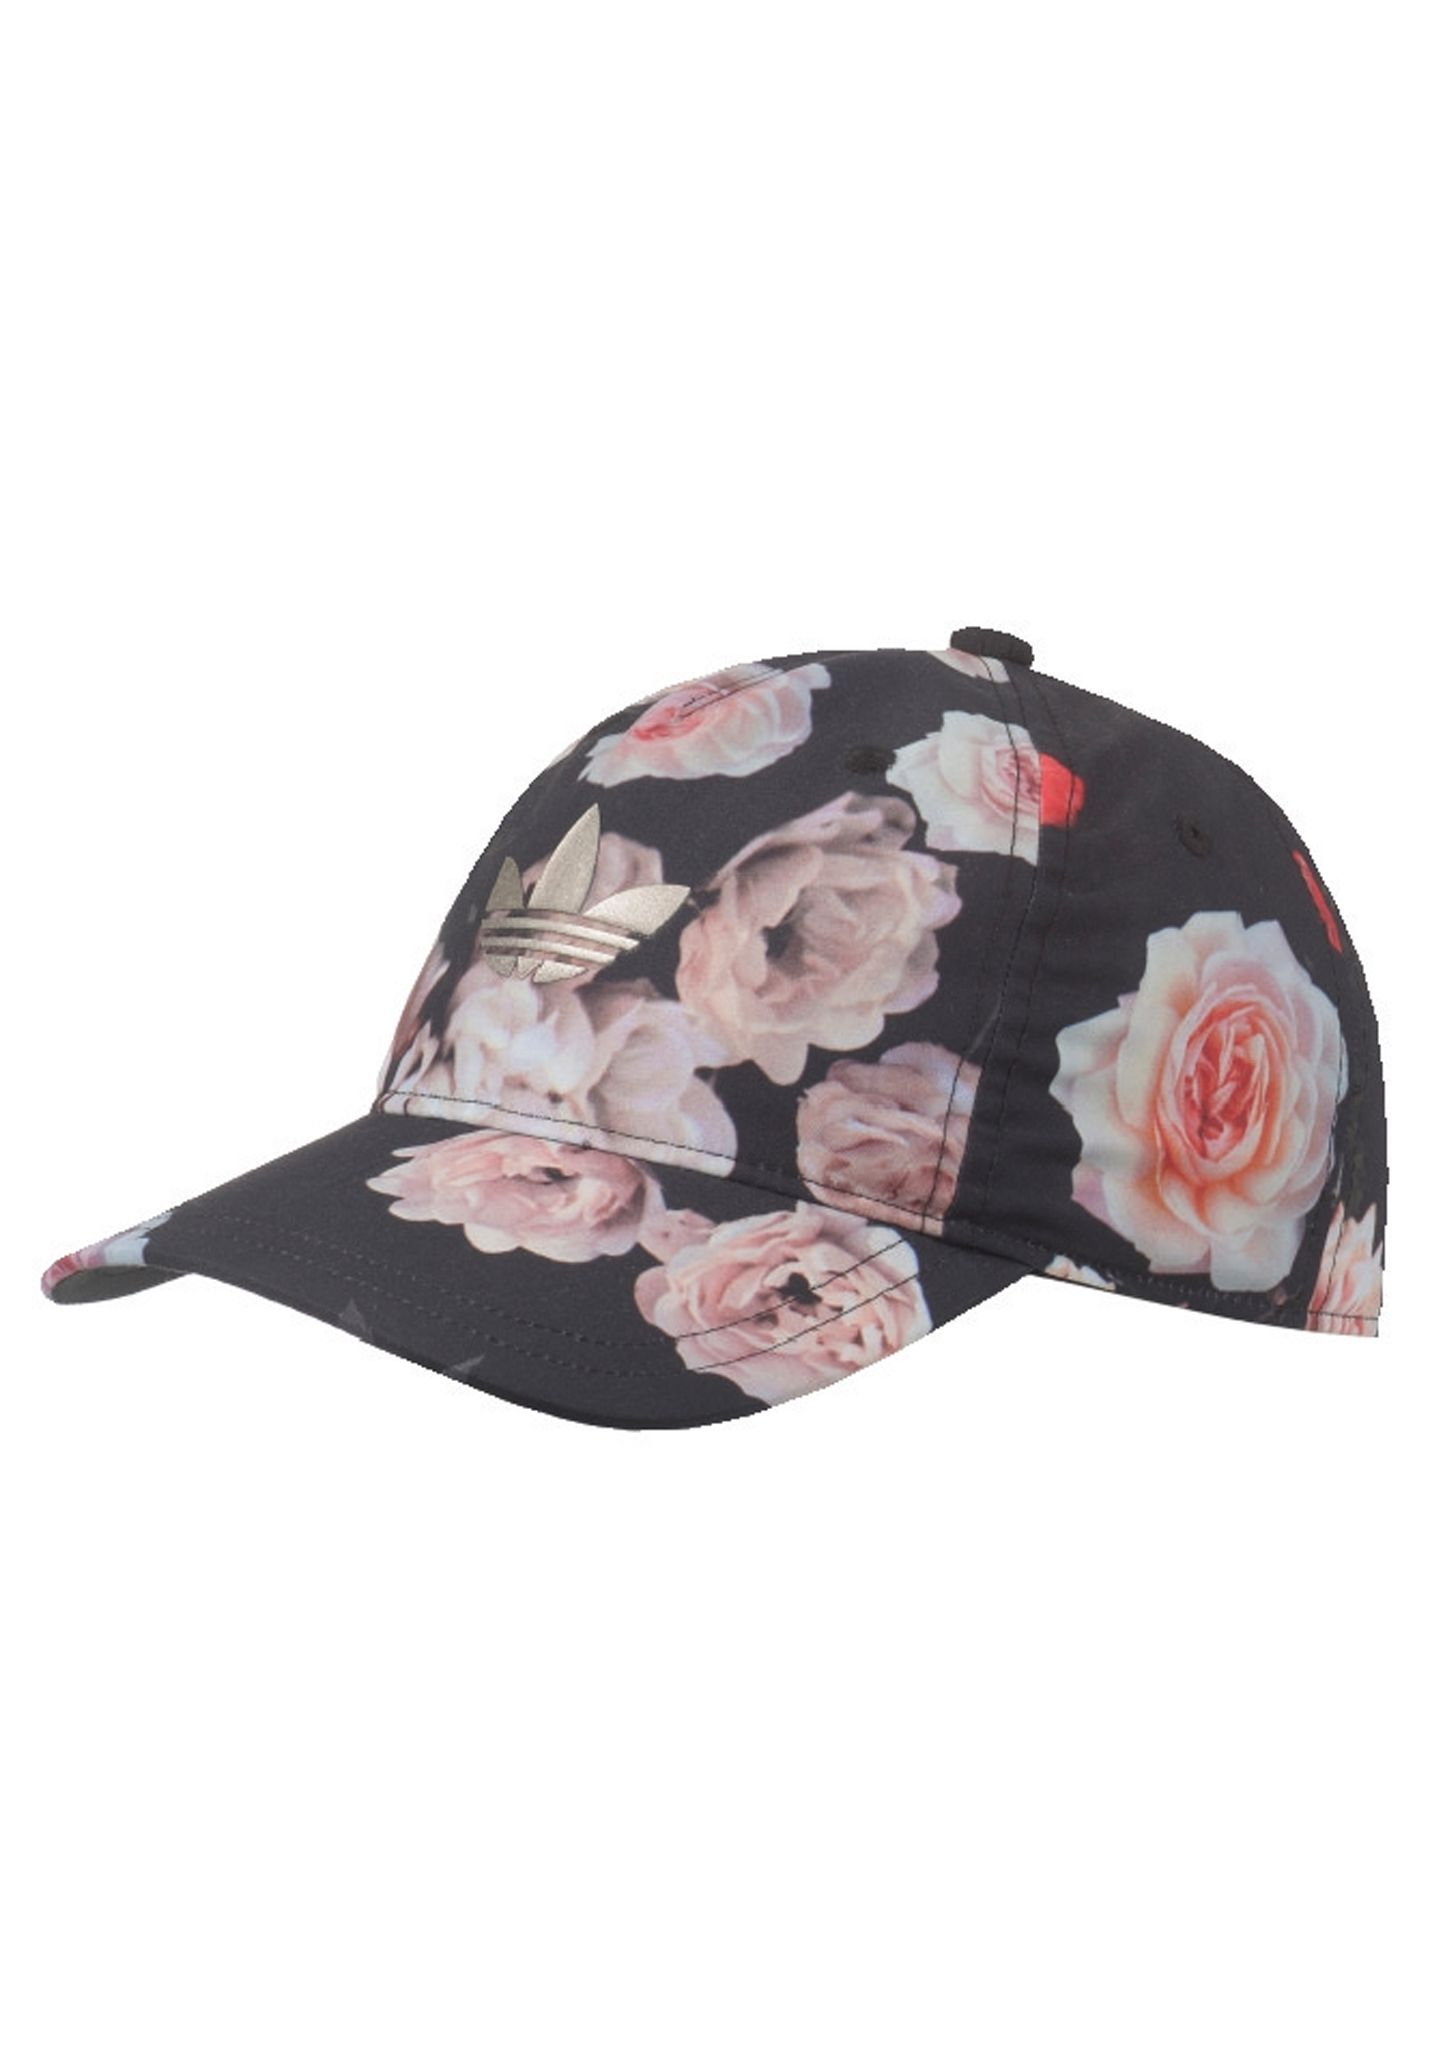 ADIDAS Rose Print - Snapback Cap for Women - Black - Planet Sports d2f3ed840a